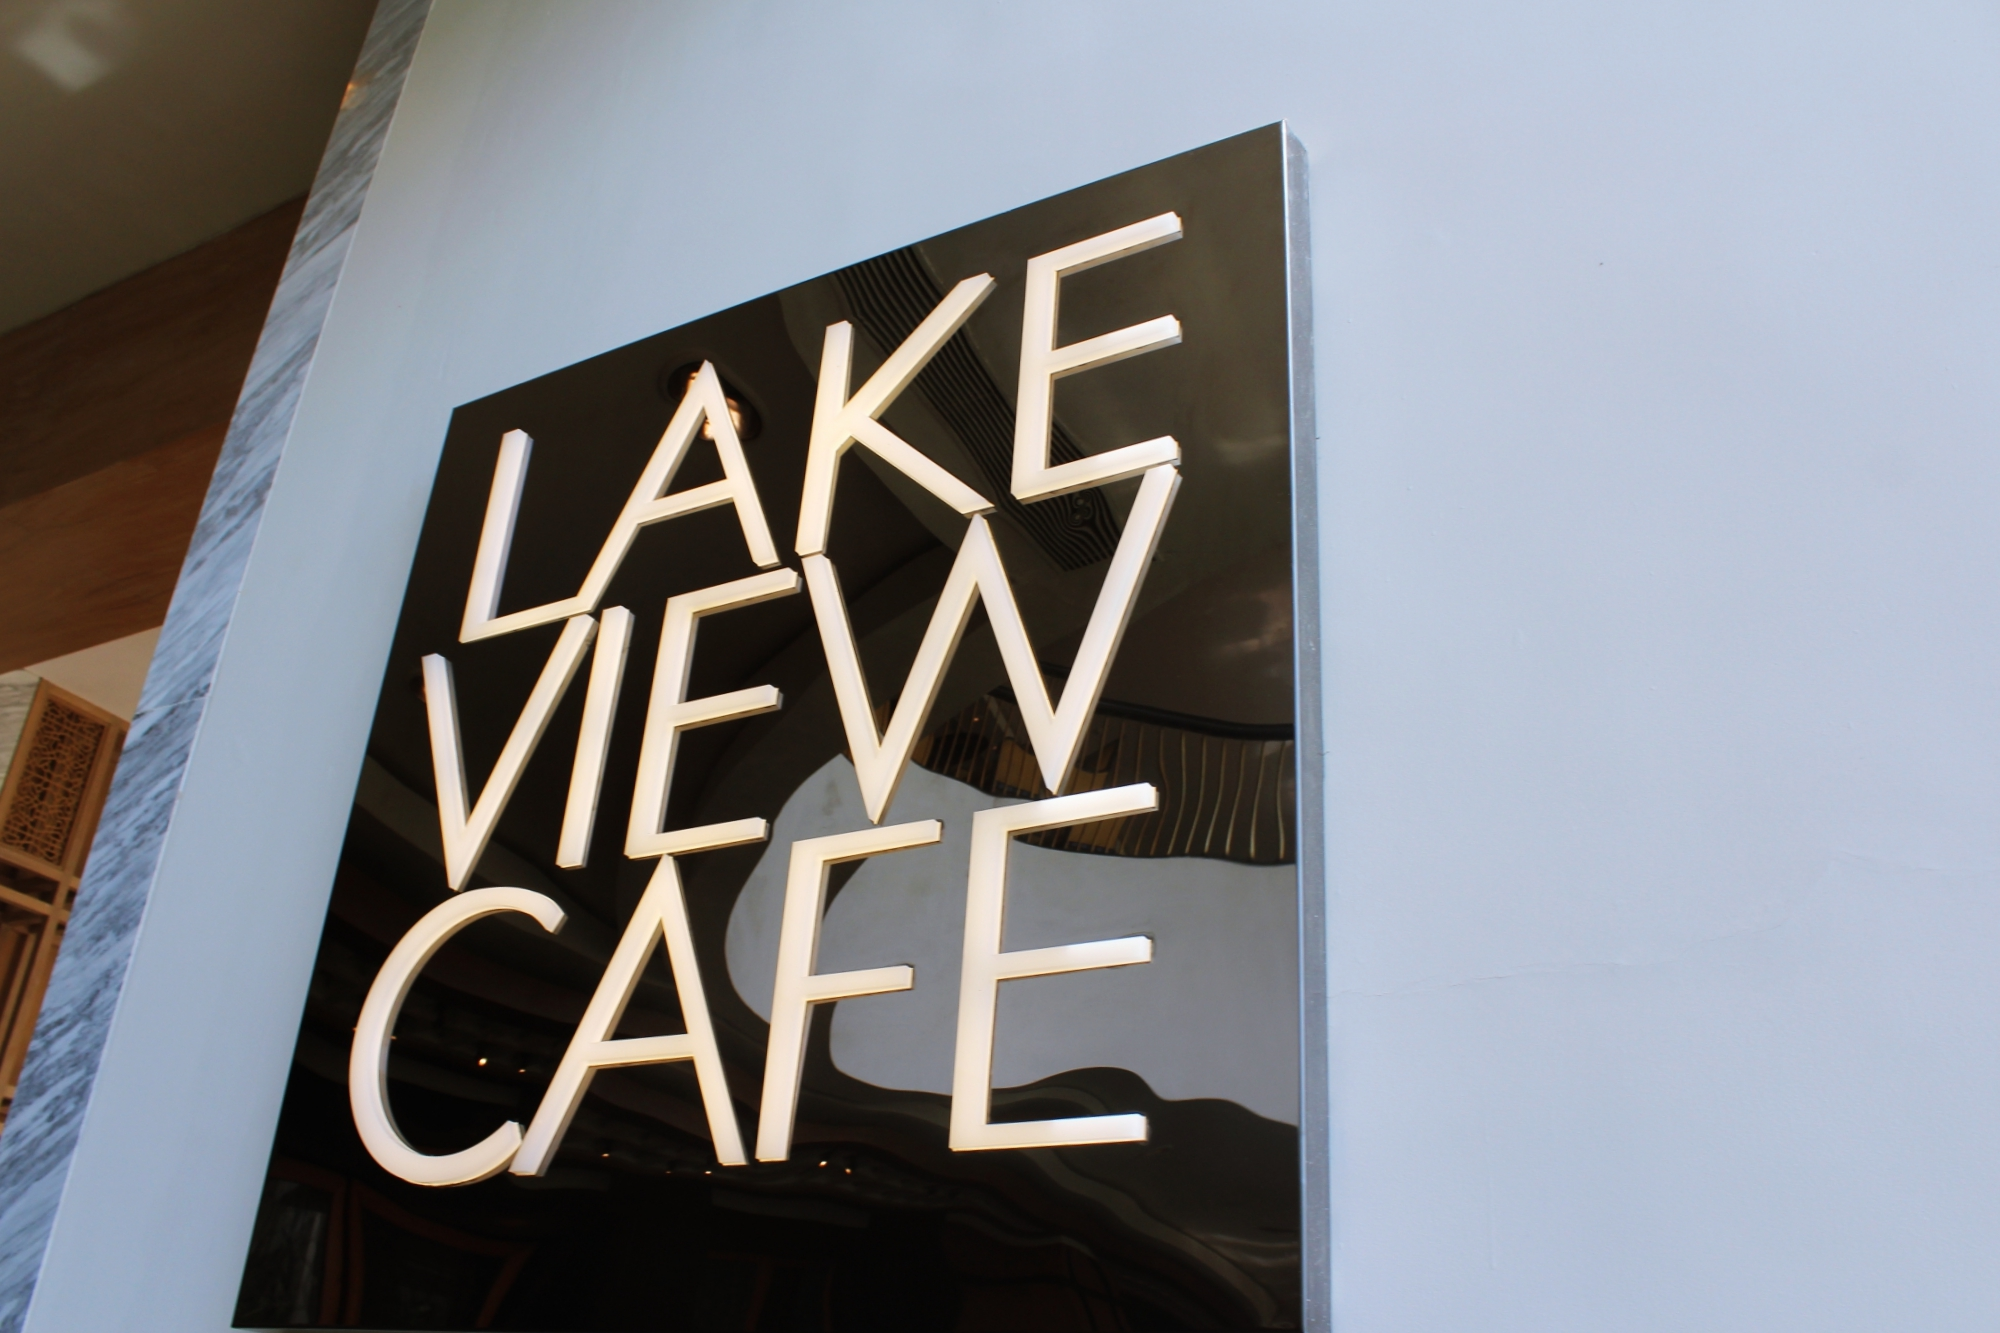 Lake View Cafe Mumbai